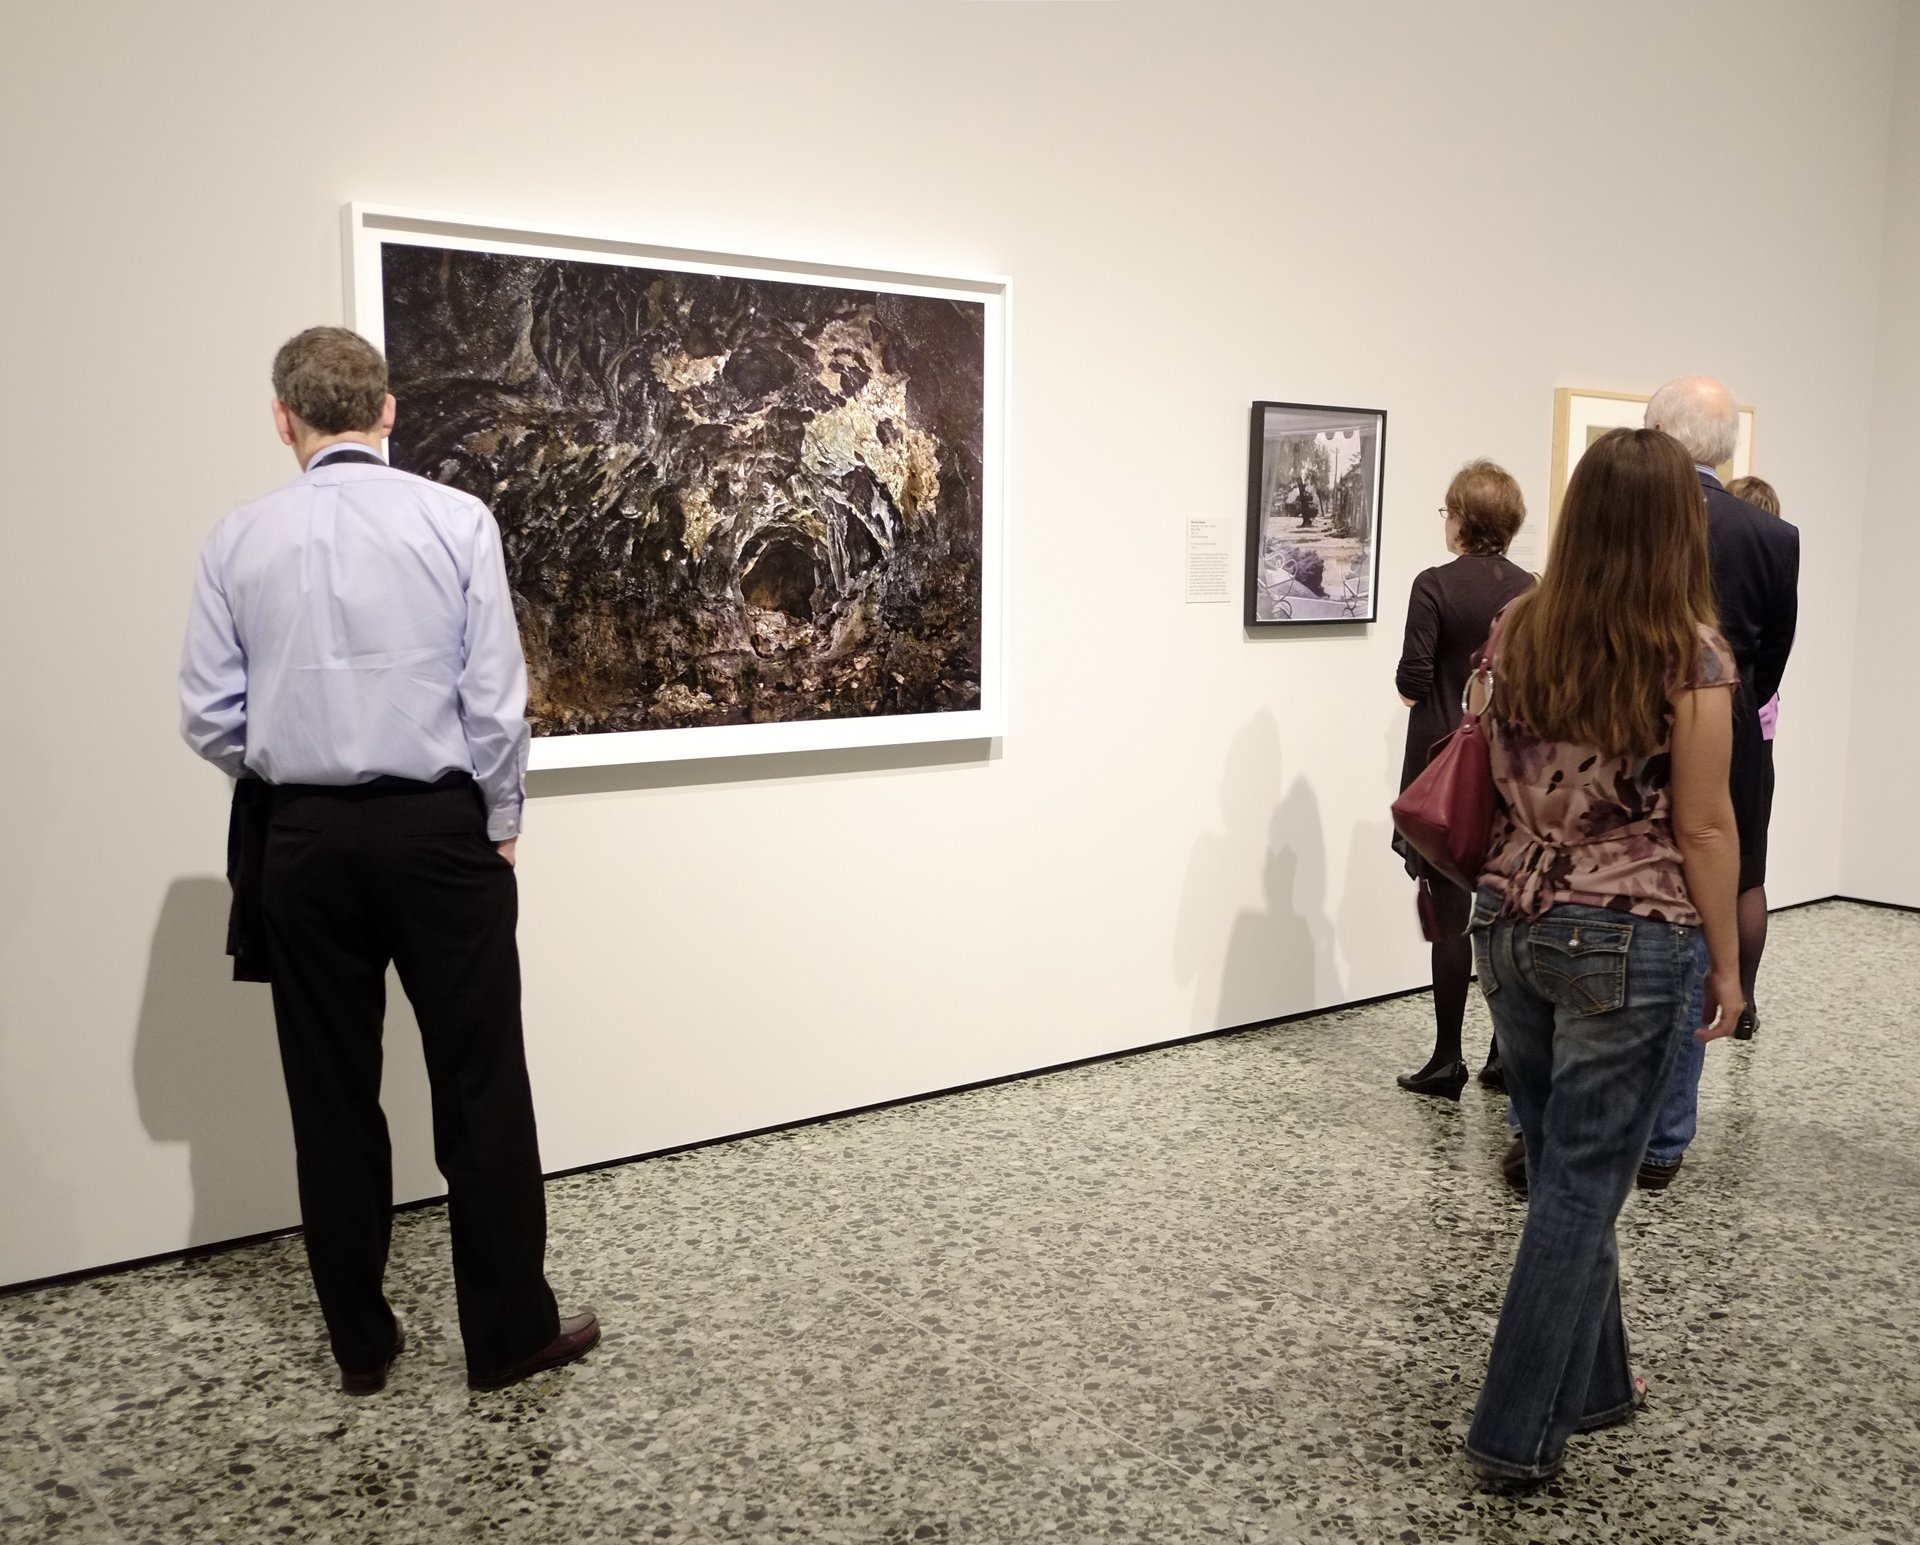 Museum of Fine Arts Houston, War/Photography: Photographs of Armed Conflict and its Aftermath. Curated by Anne Tucker, 2012,